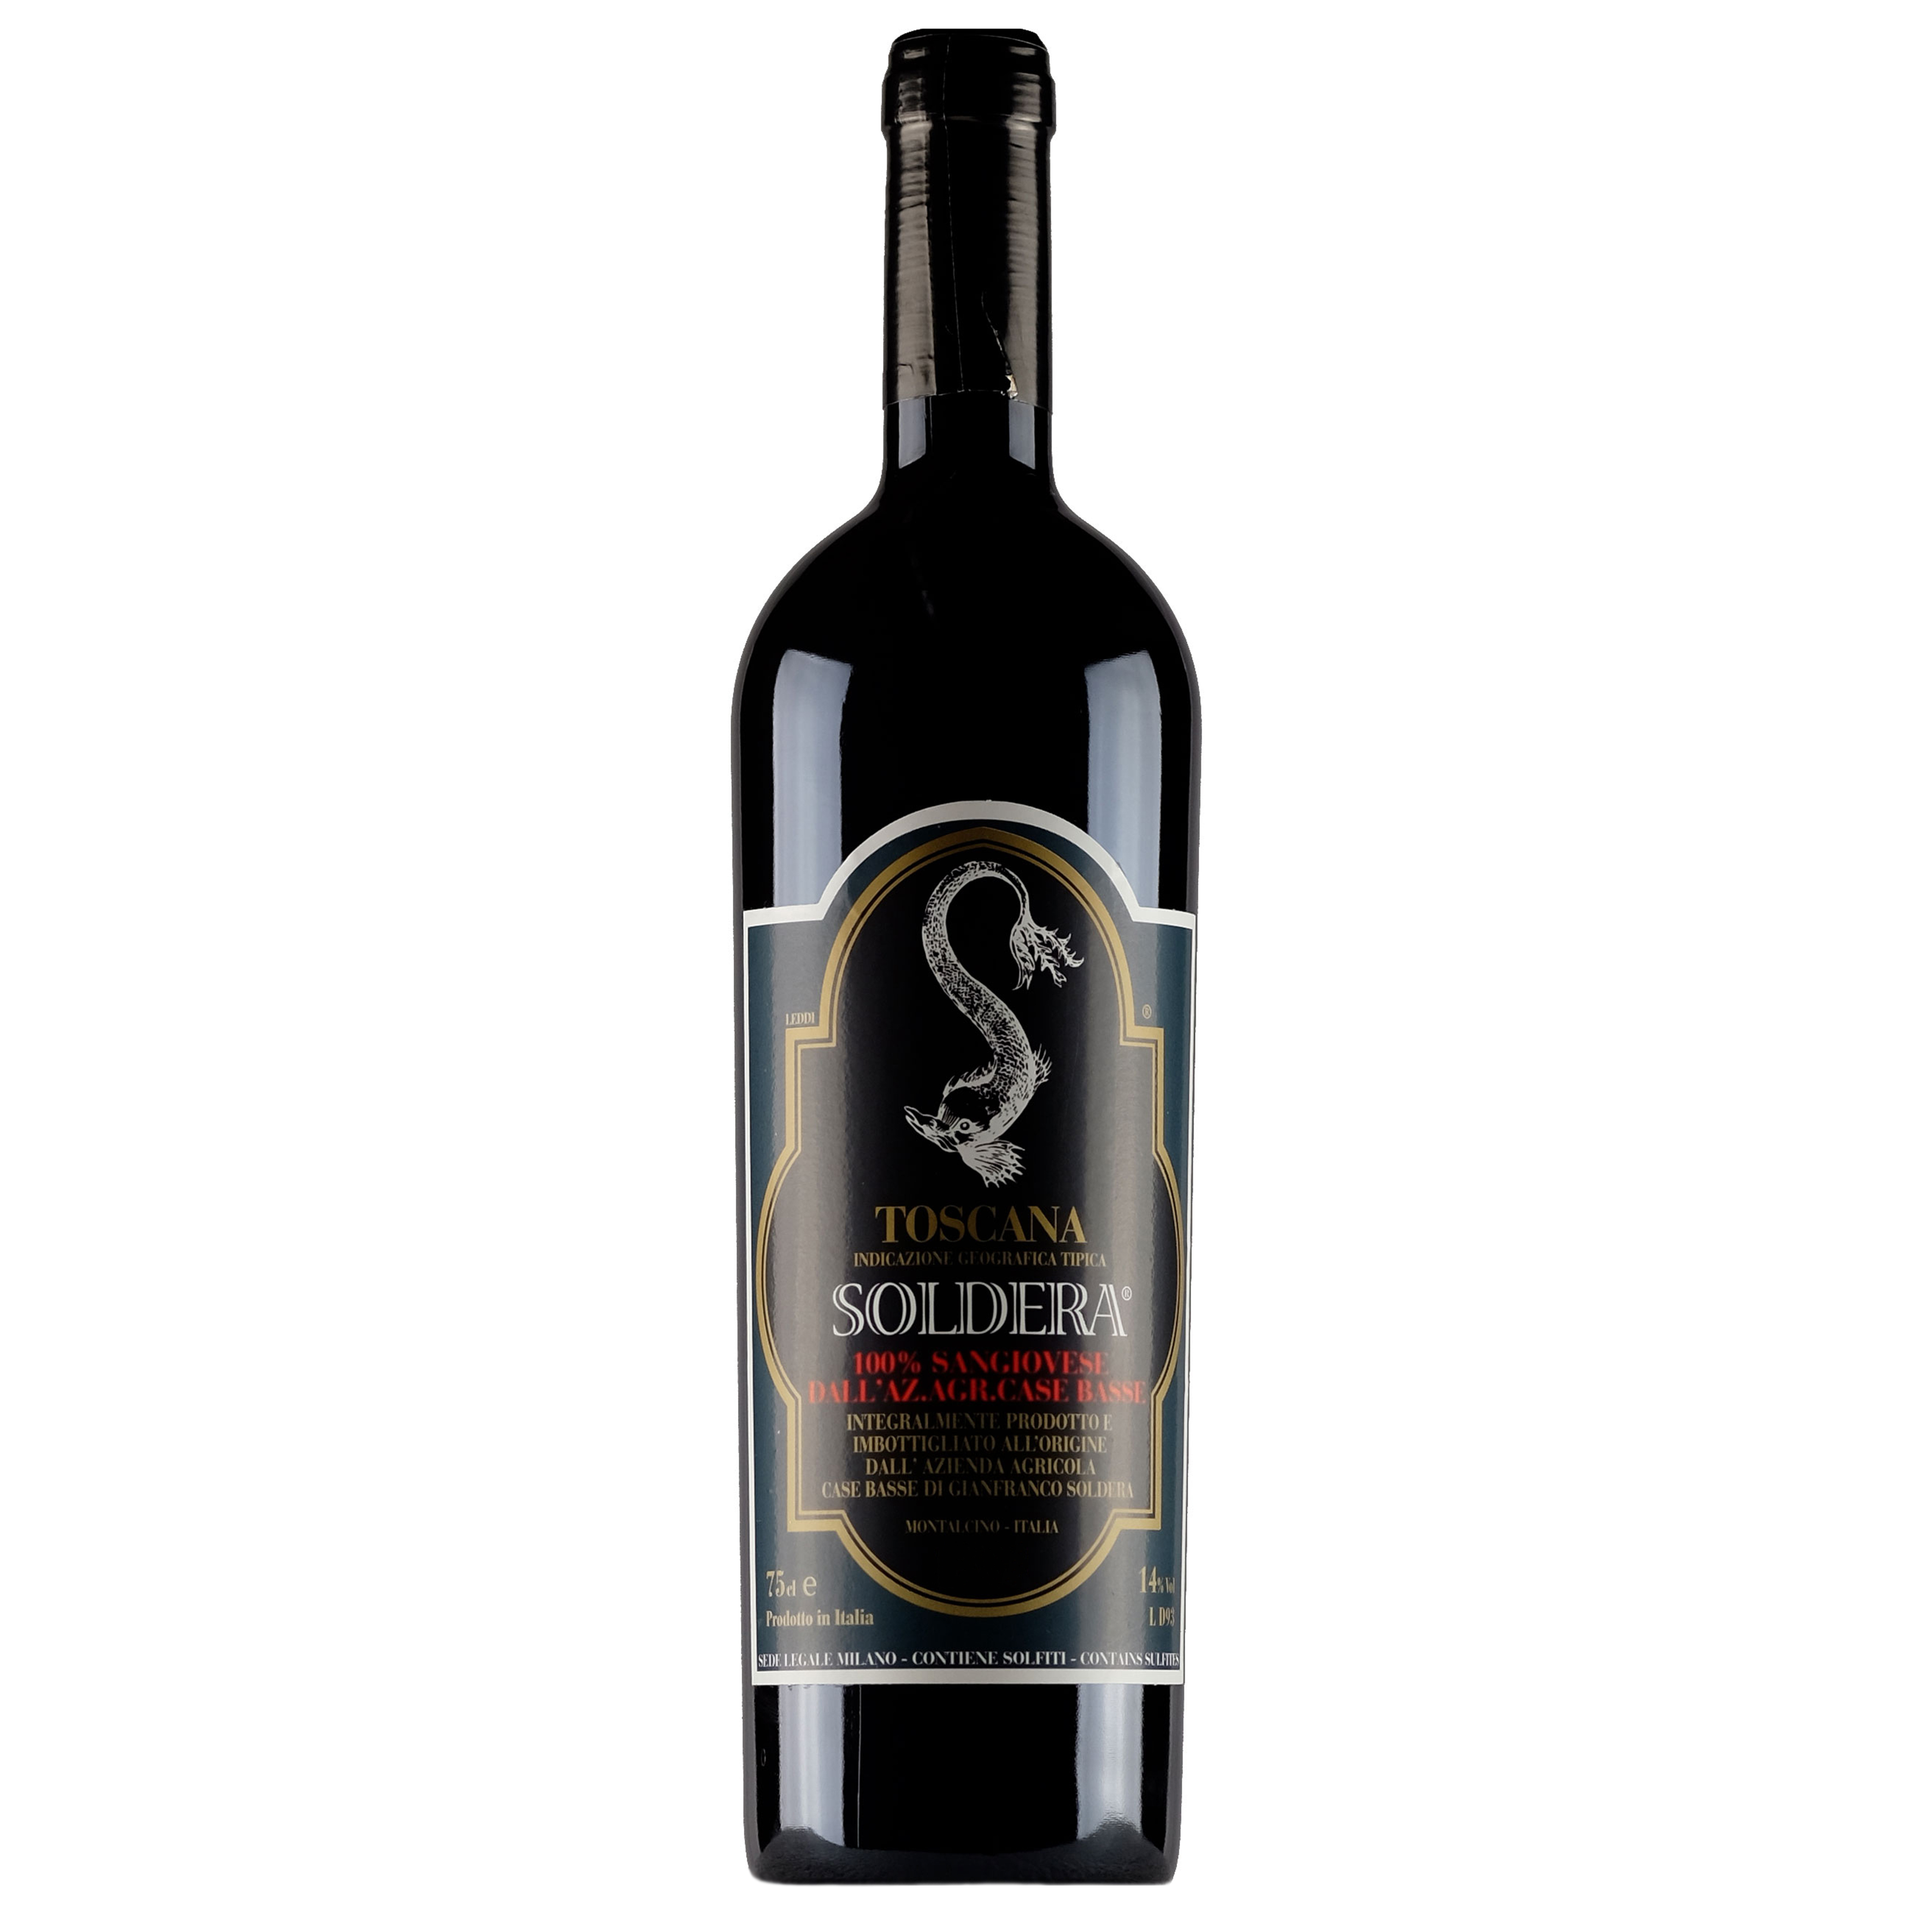 Toscana Sangiovese IGT 2006 Soldera - Vino Rosso - Case Basse